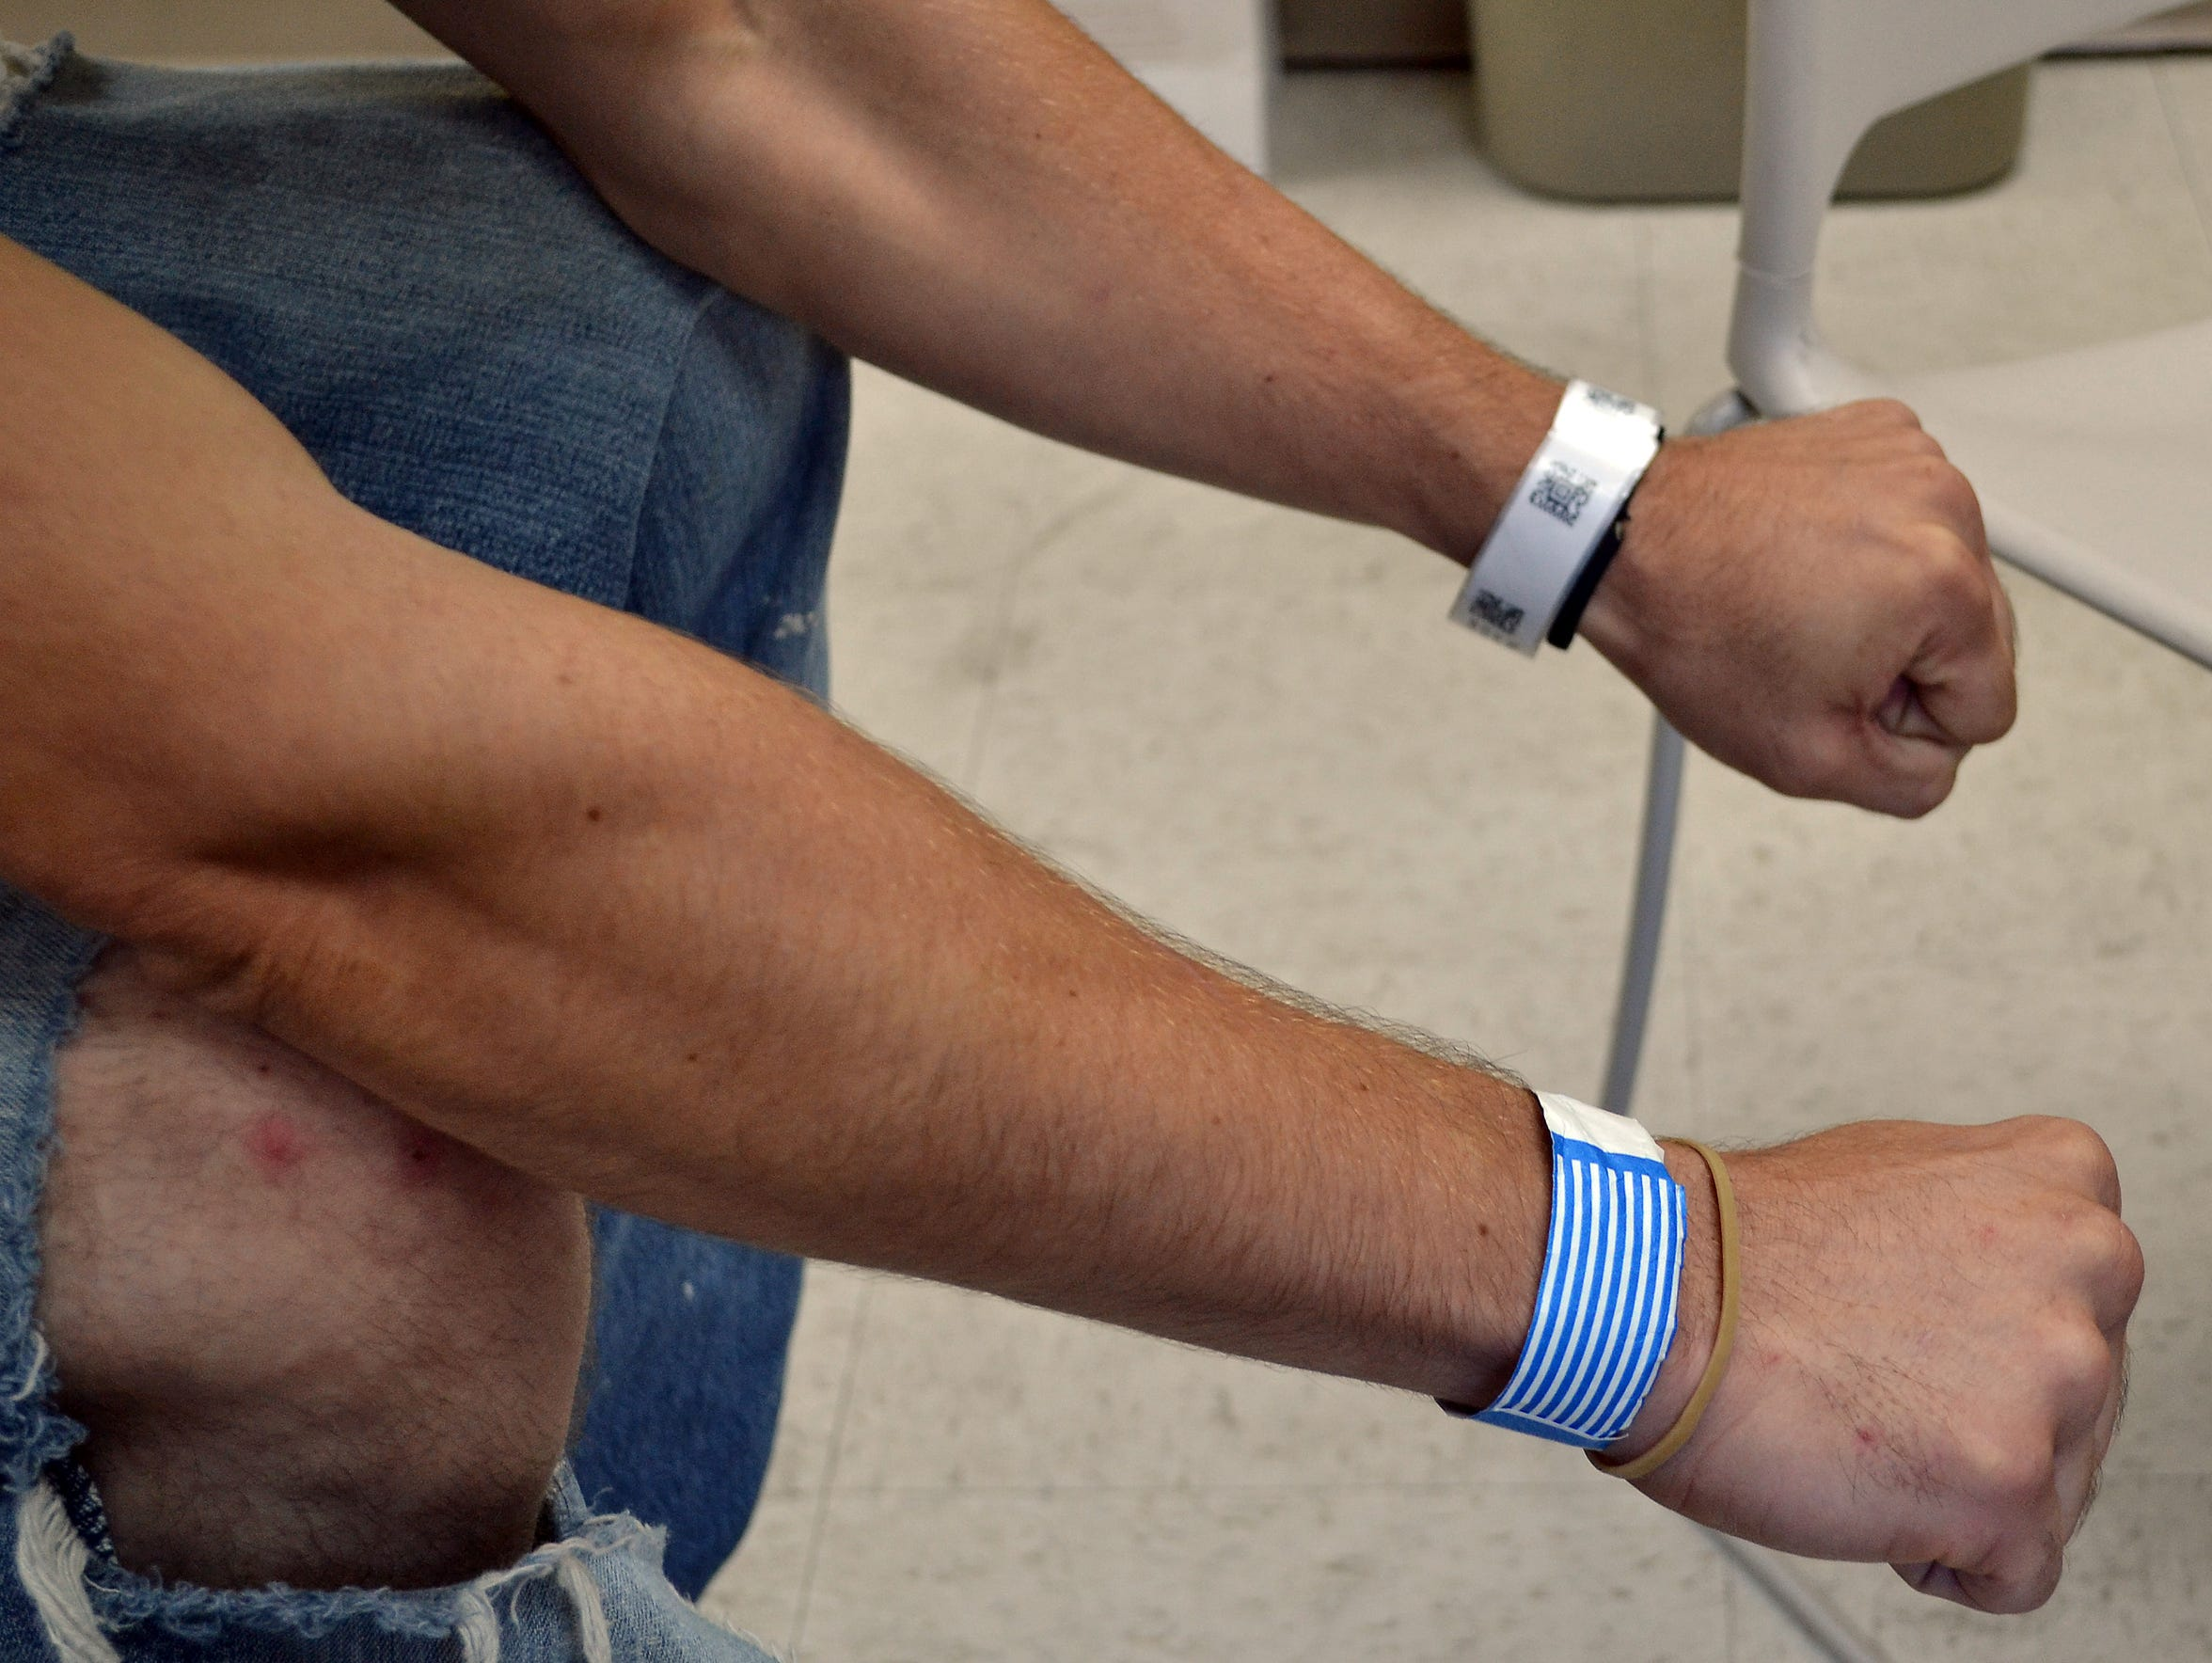 A mobile crisis team client shows wristbands at the